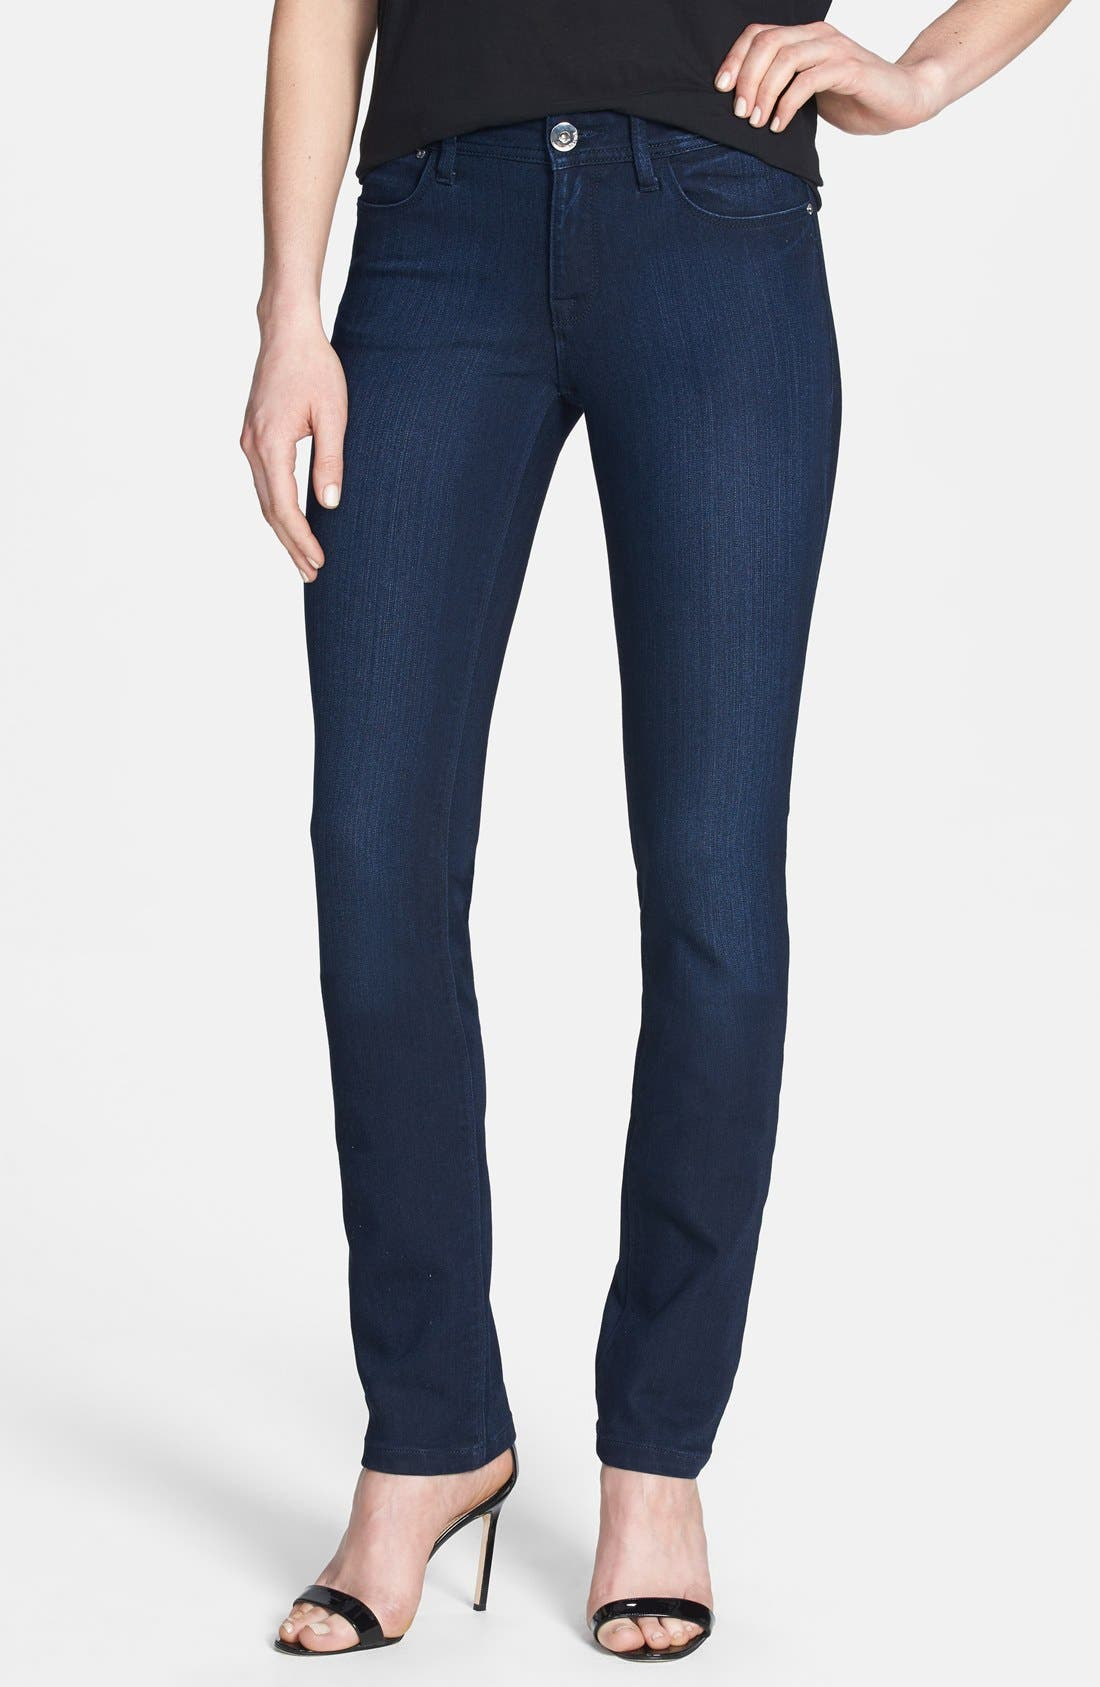 Main Image - DL1961 'Coco' Curvy Straight Jeans (Wooster)